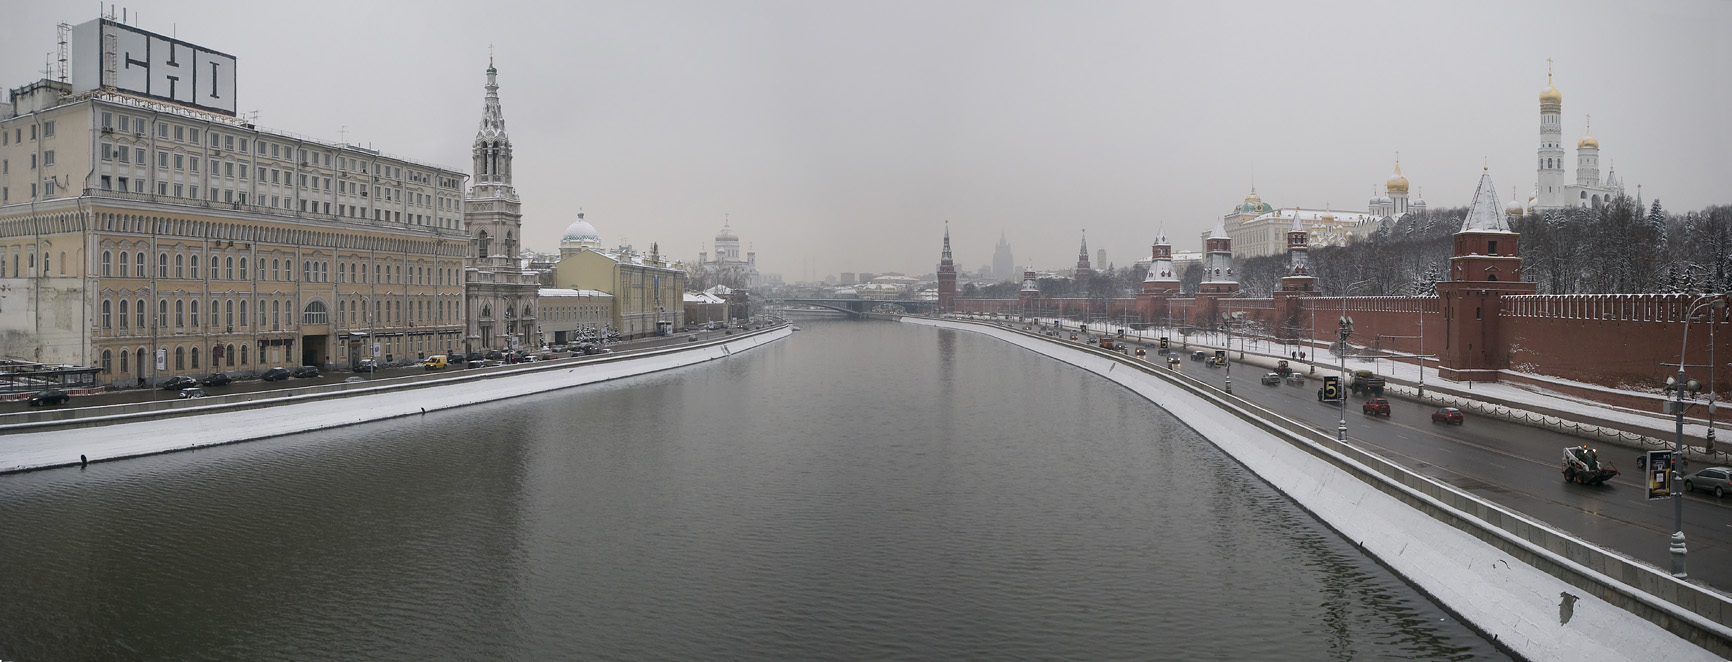 The Moskva river and Kremlin wall